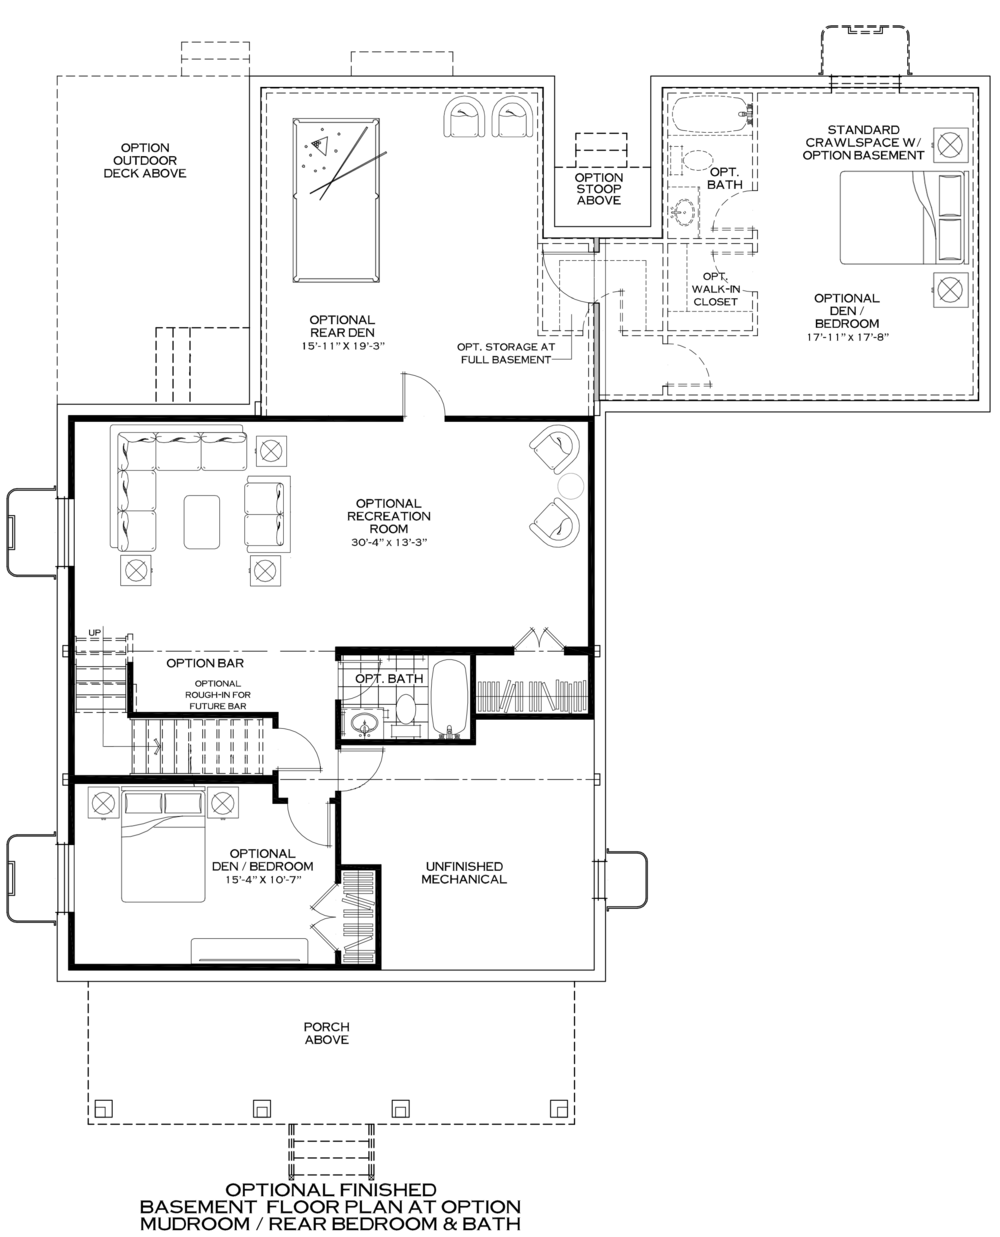 1-Chestertown S-D Opt Finish Basement Opt Rear Bedroom _ Bath.png